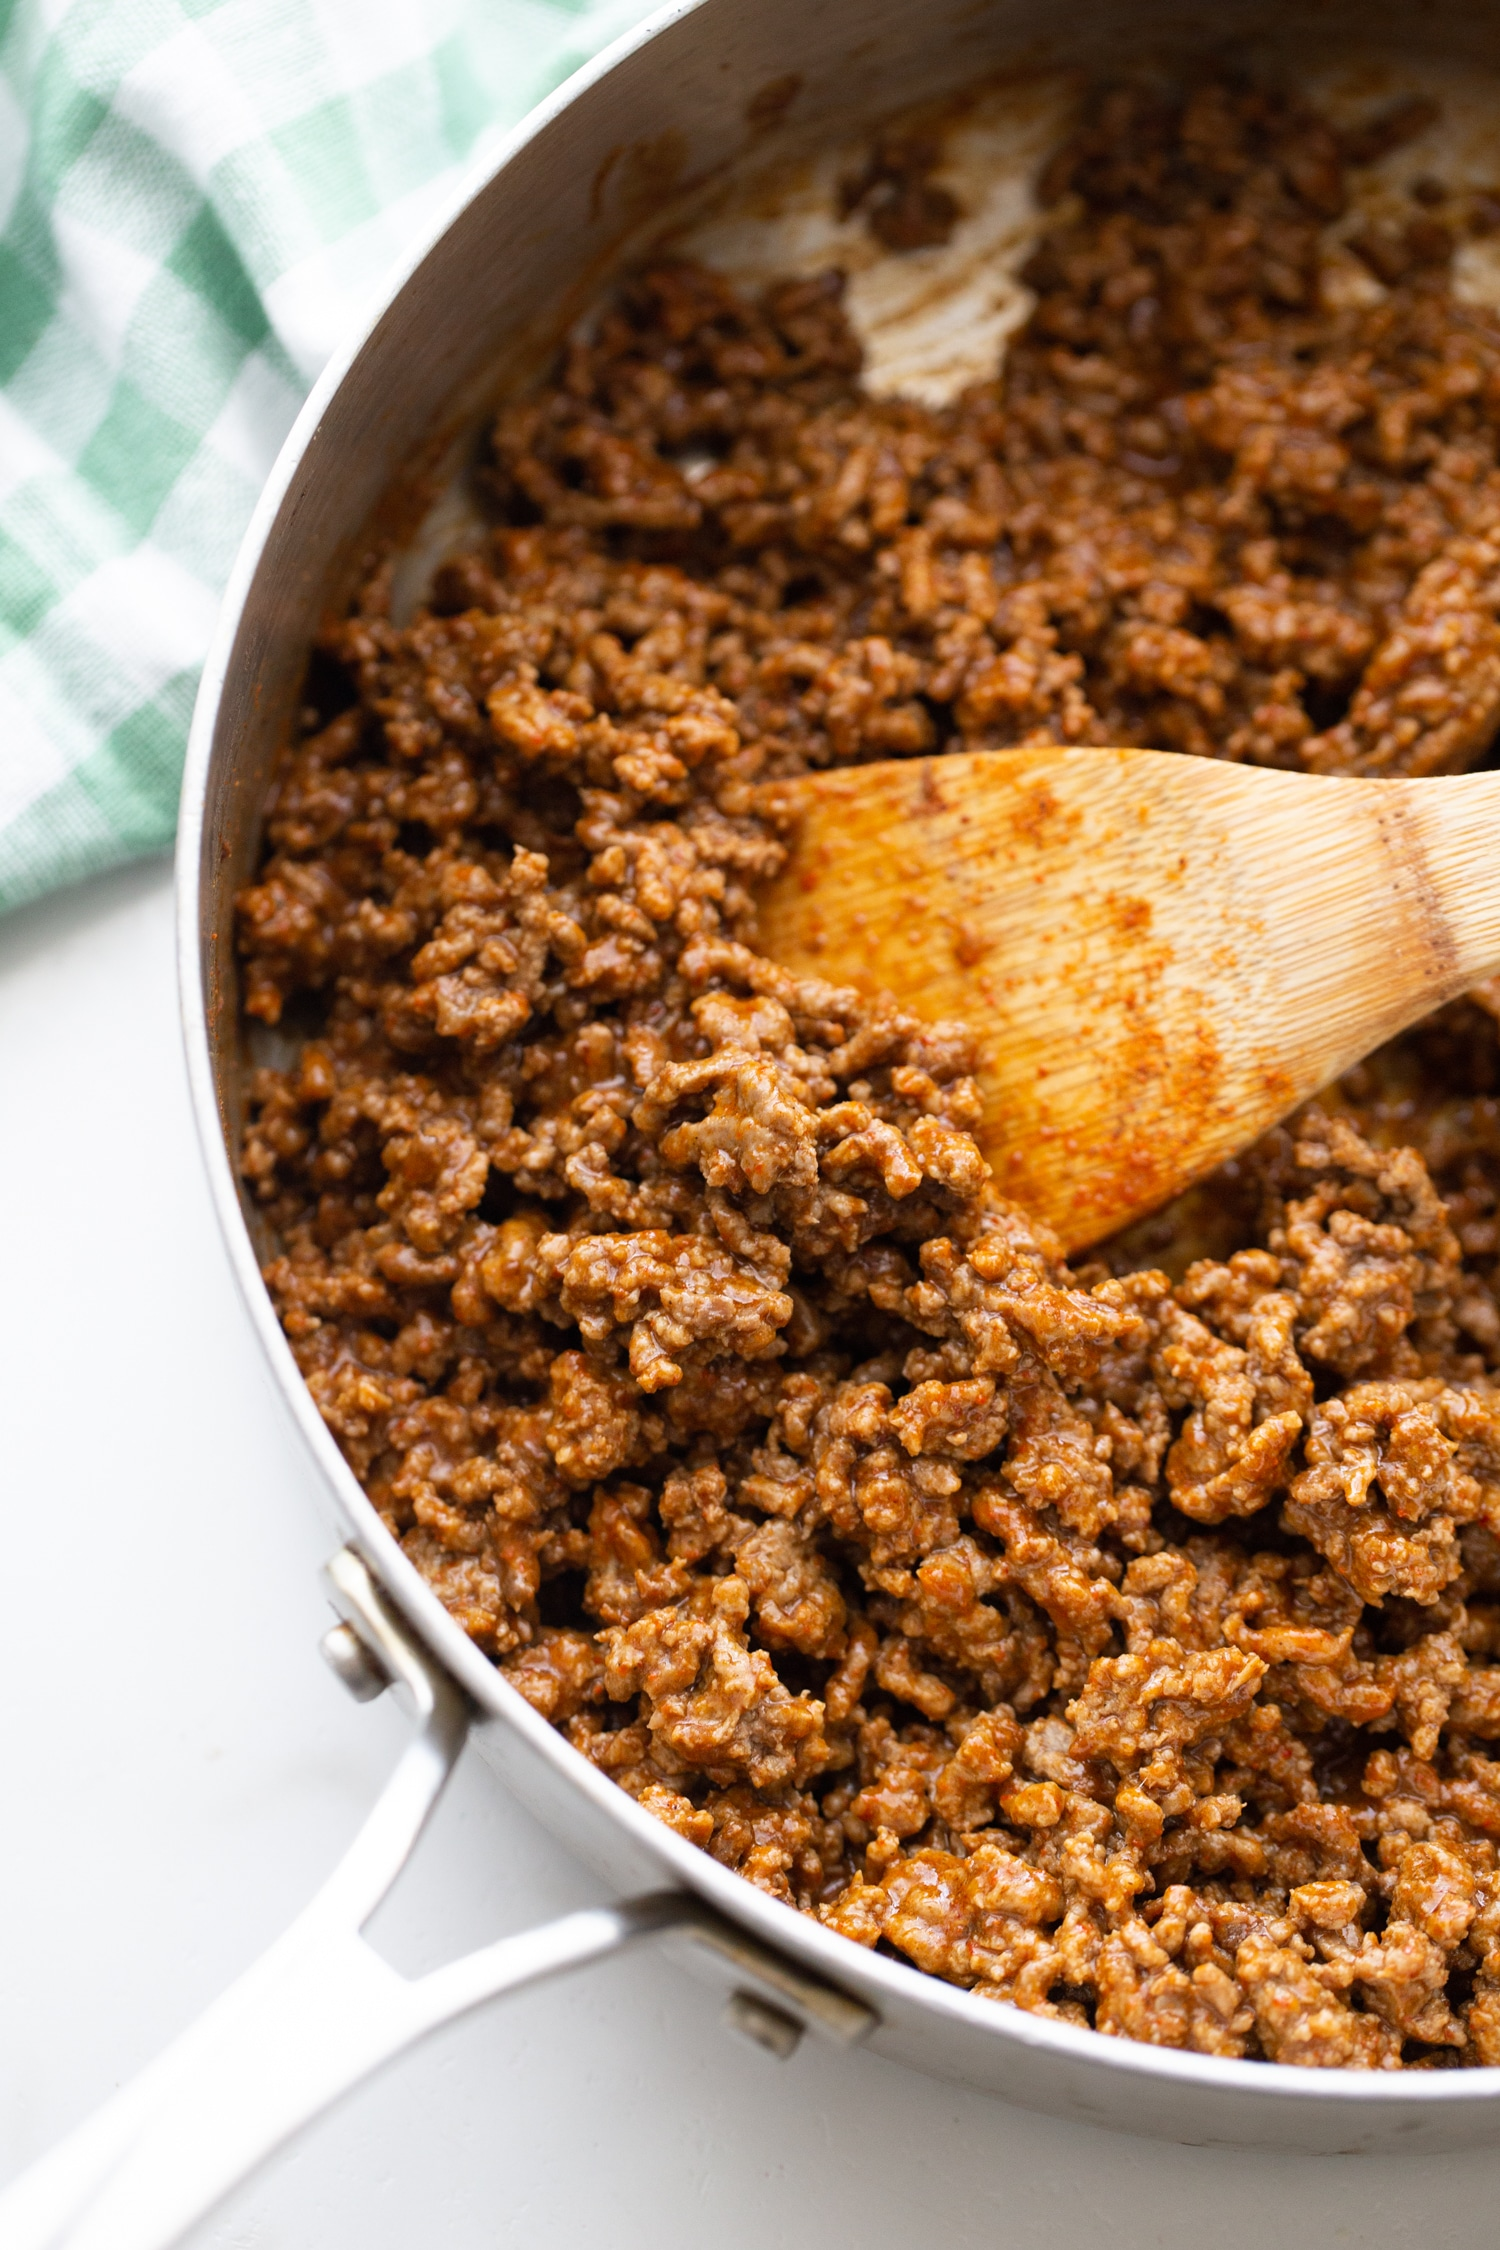 ground beef with taco seasoning sauteeing in skillet with wooden spoon